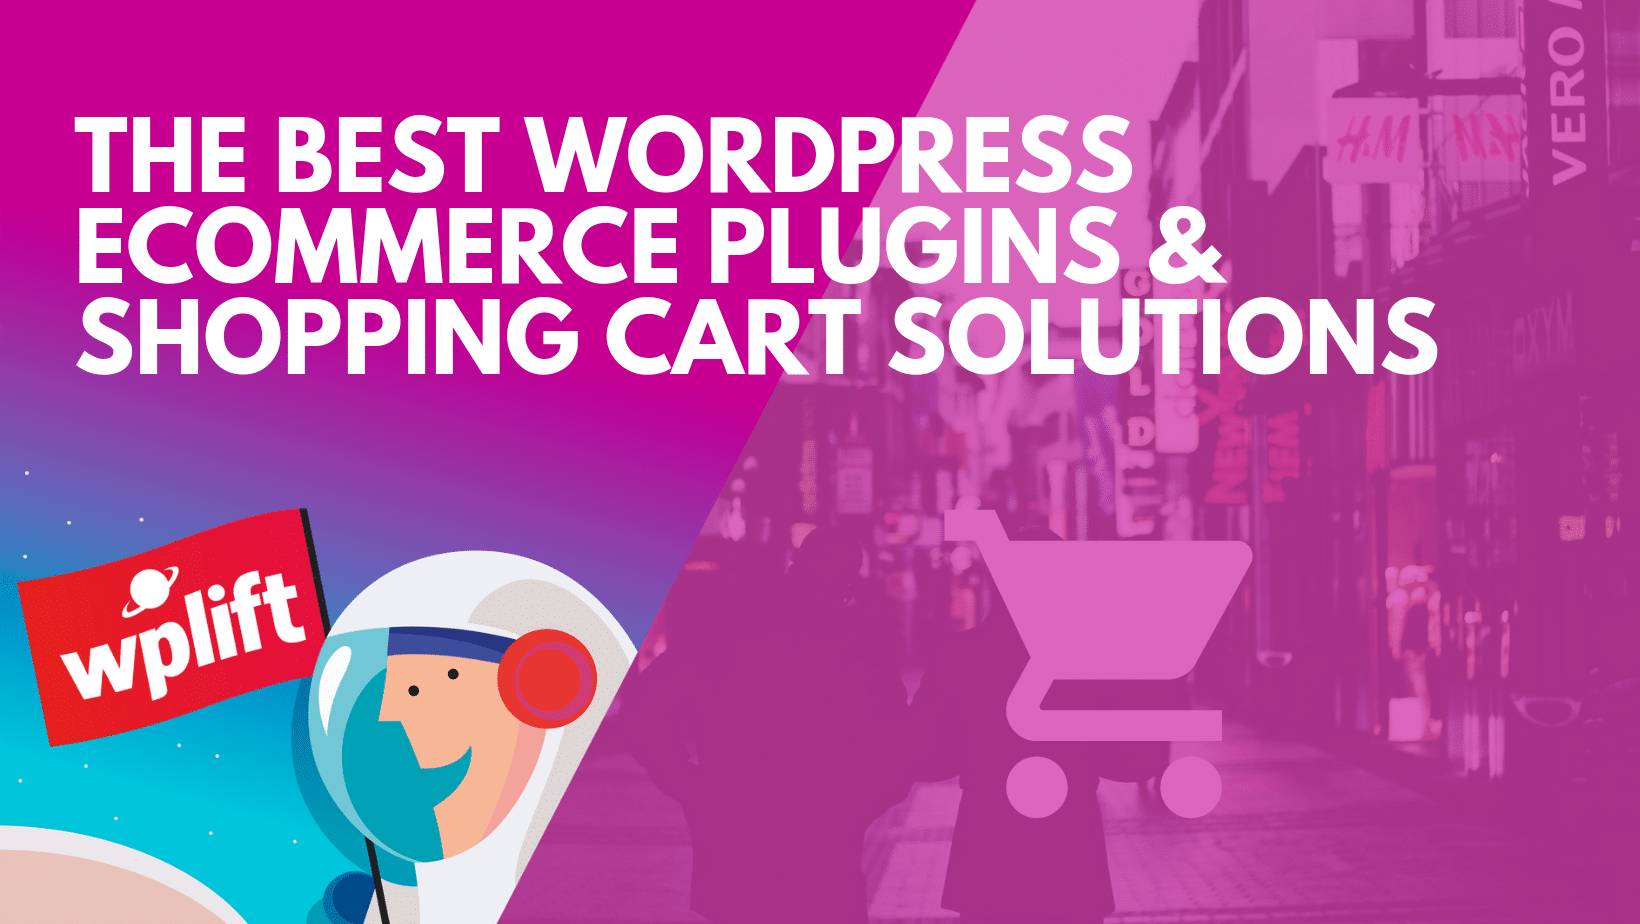 The Best WordPress eCommerce Plugins & Shopping Cart Solutions